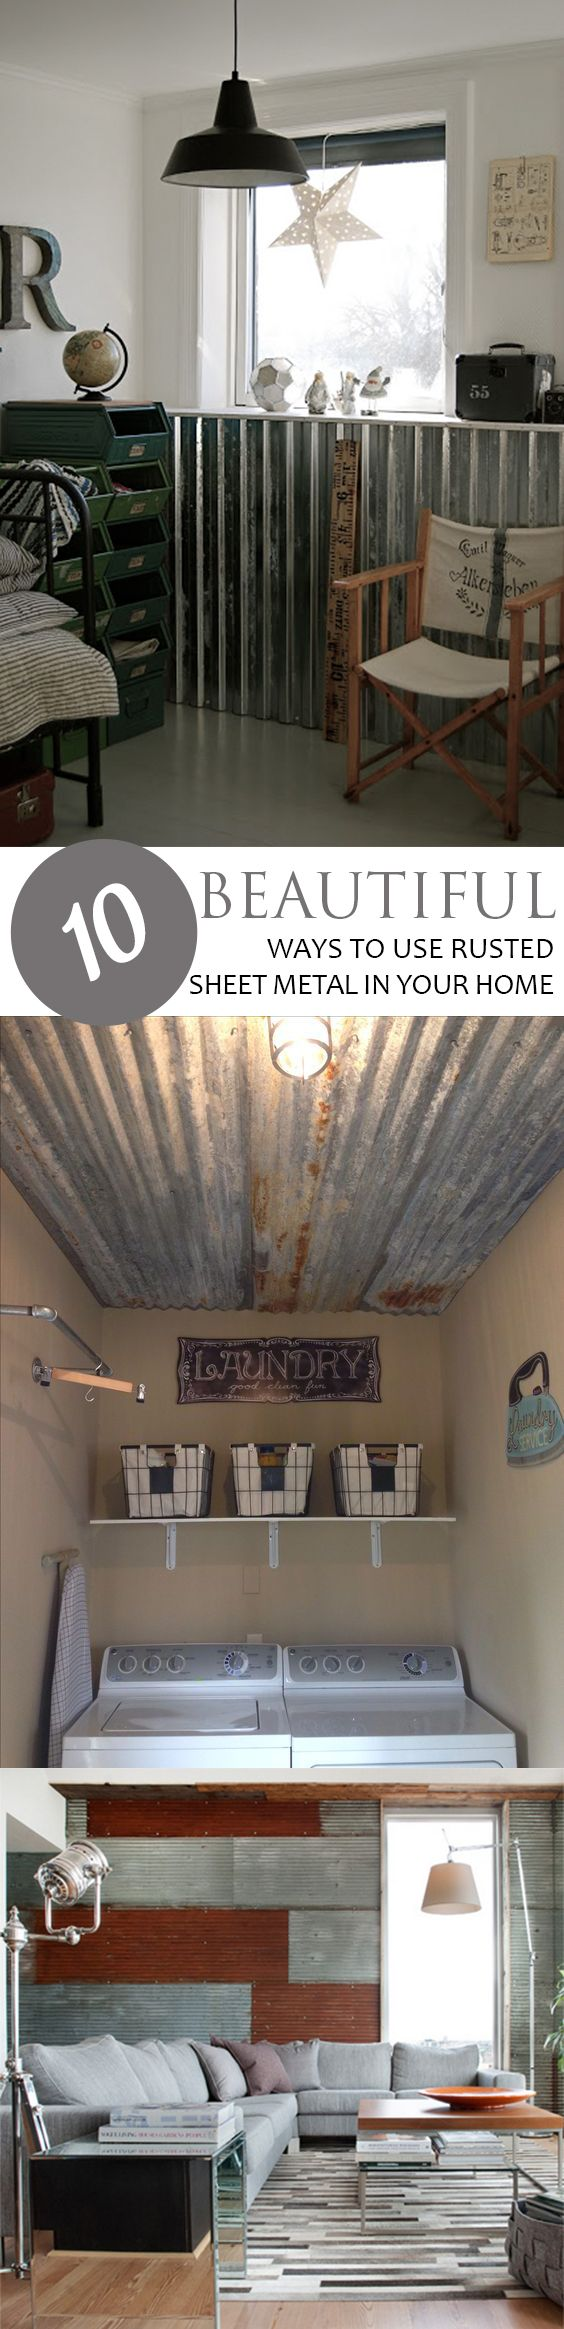 - 10 Beautiful Ways To Use Rusted Sheet Metal In Your Home Diy